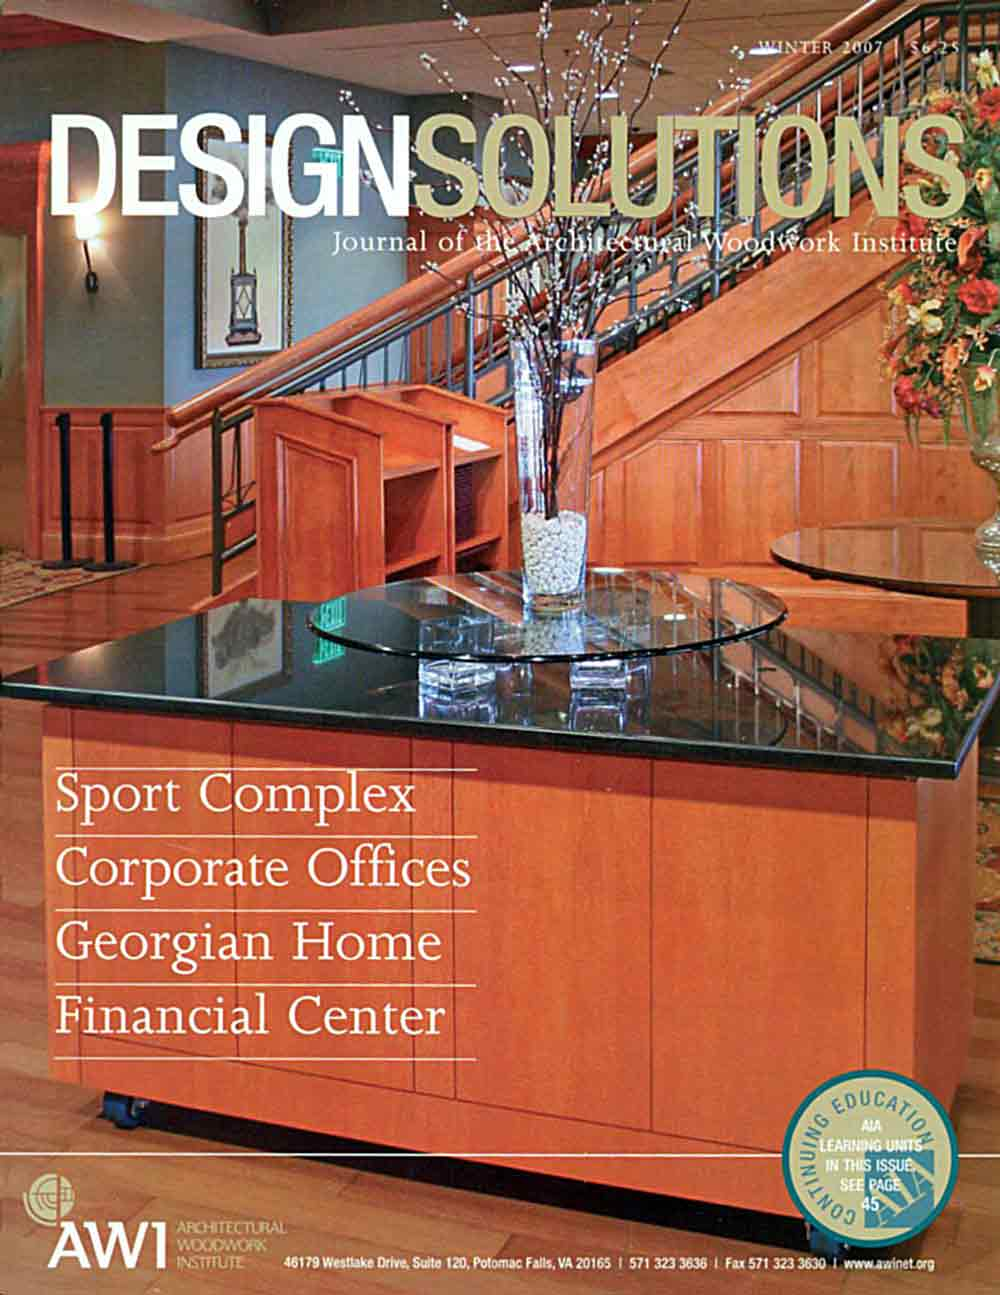 Cover of The Journal of Architecture Woodworking Institute featuring New England Classic wainscot and panels